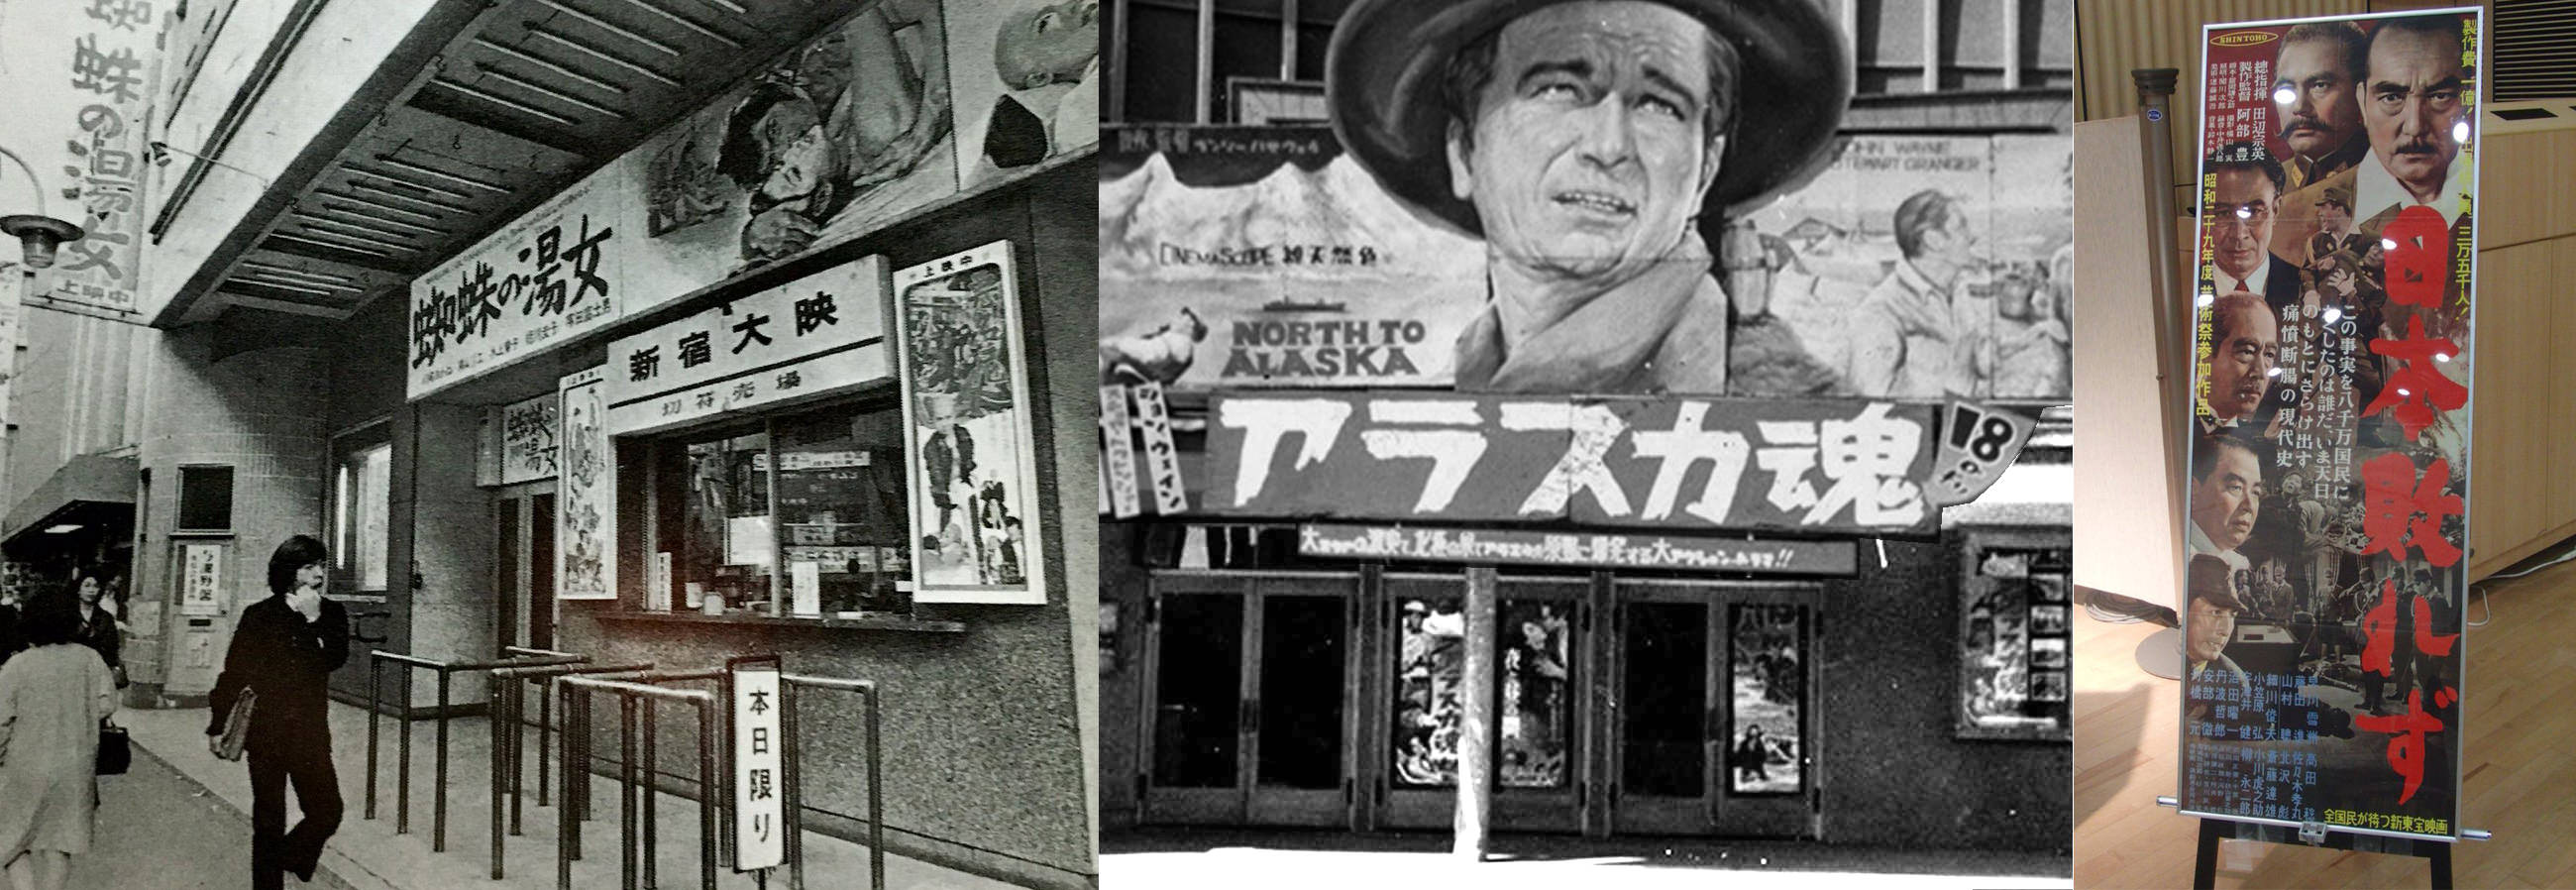 Common uses for Japanese STB movie posters | alongside ticket booths (left) | as theater door panels (center) | in freestanding sandwich board style display cases (right)